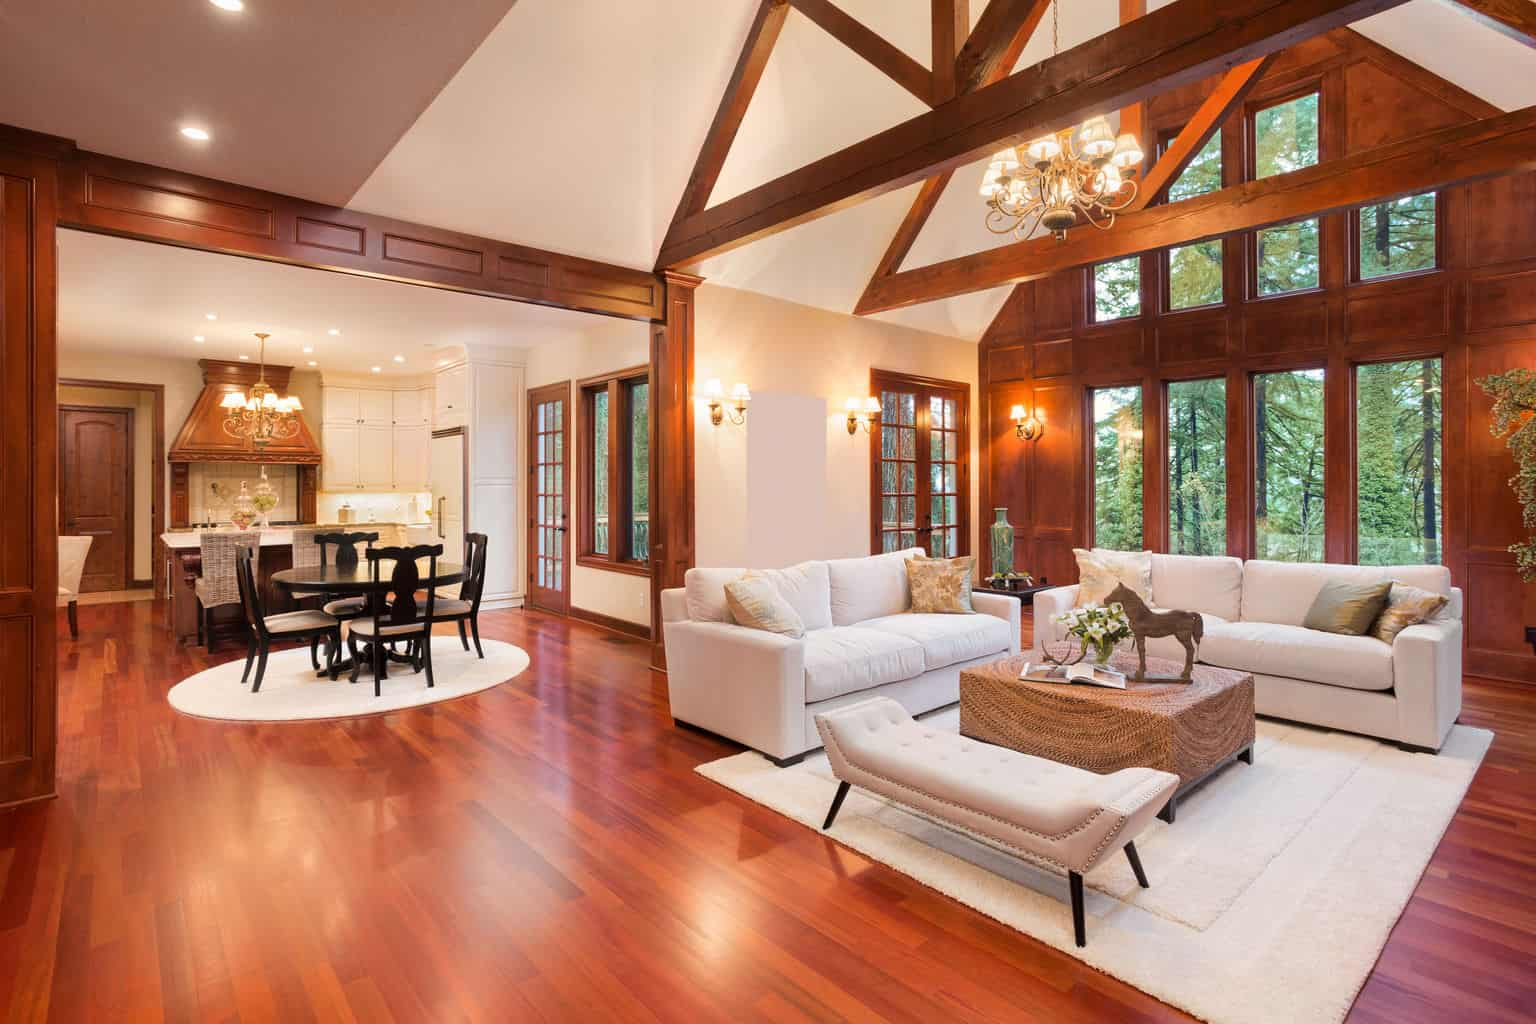 Engineered hardwood designs for your floor the flooring lady - Hardwood floor living room design ...